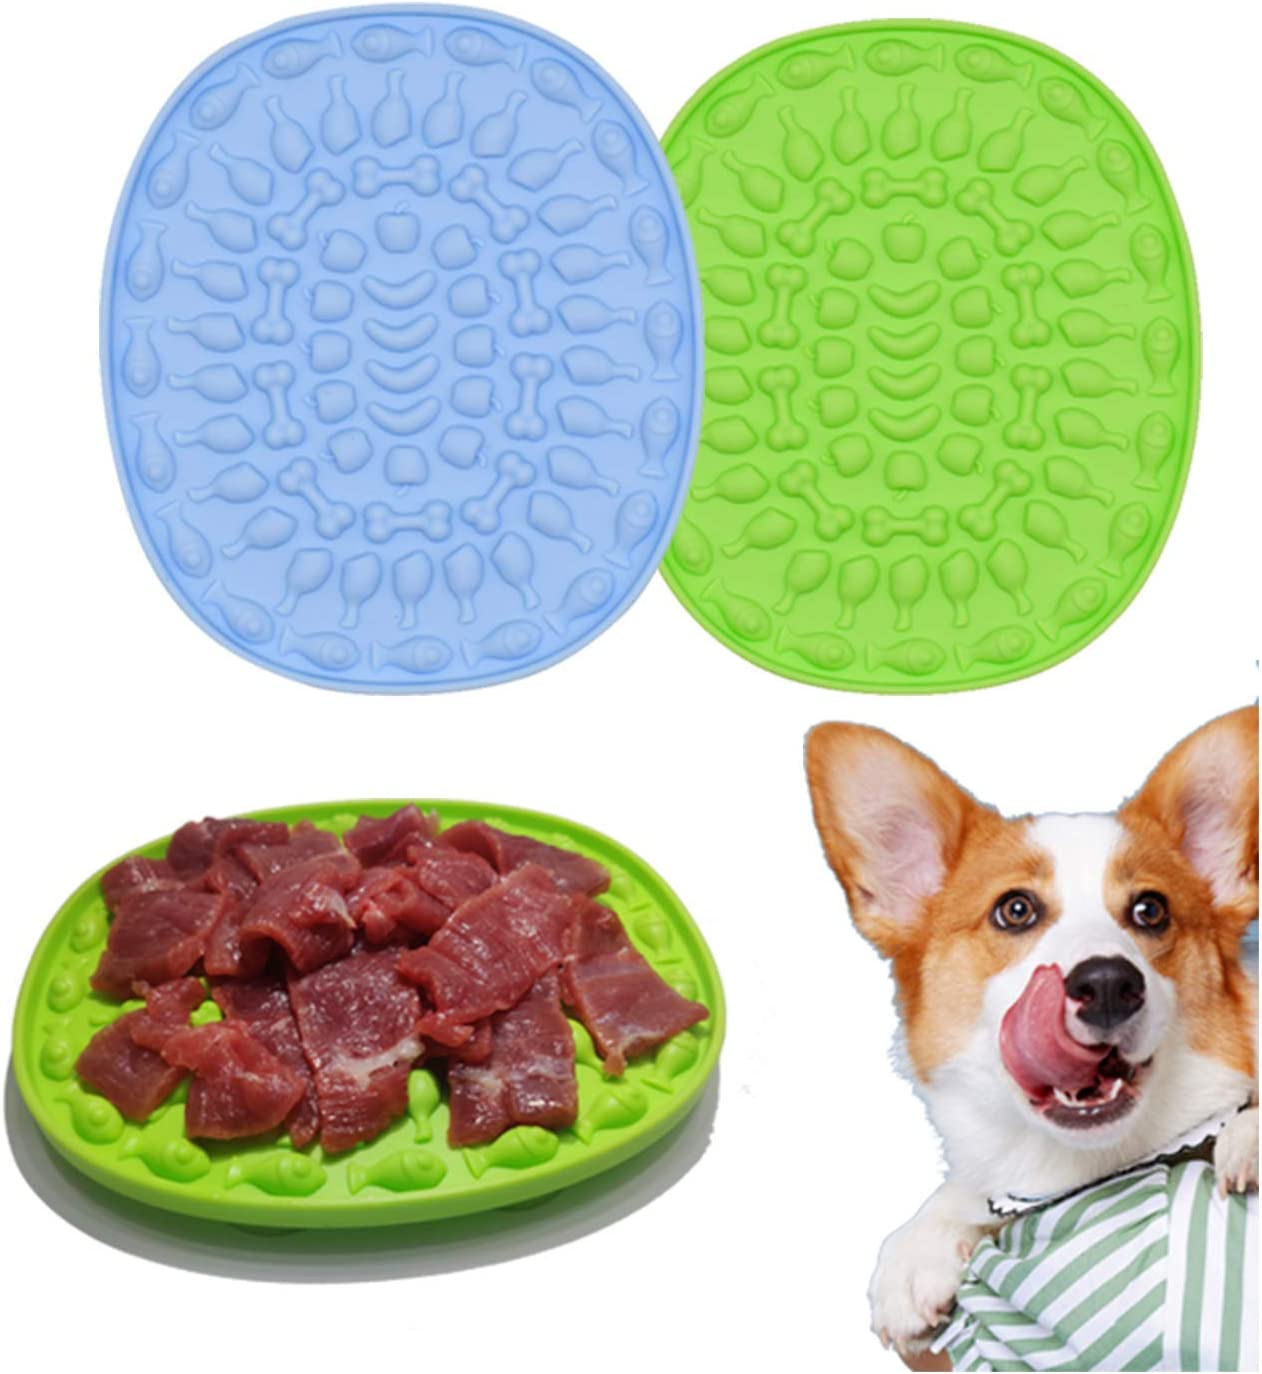 Couwilson Lick Mat for Dogs with Suction - Alternative to Slow Feeder Dog Bowls, Boredom and Anxiety Reduction, Perfect for Food, Treats, Yogurt, or Peanut Butter - 2 Pcs